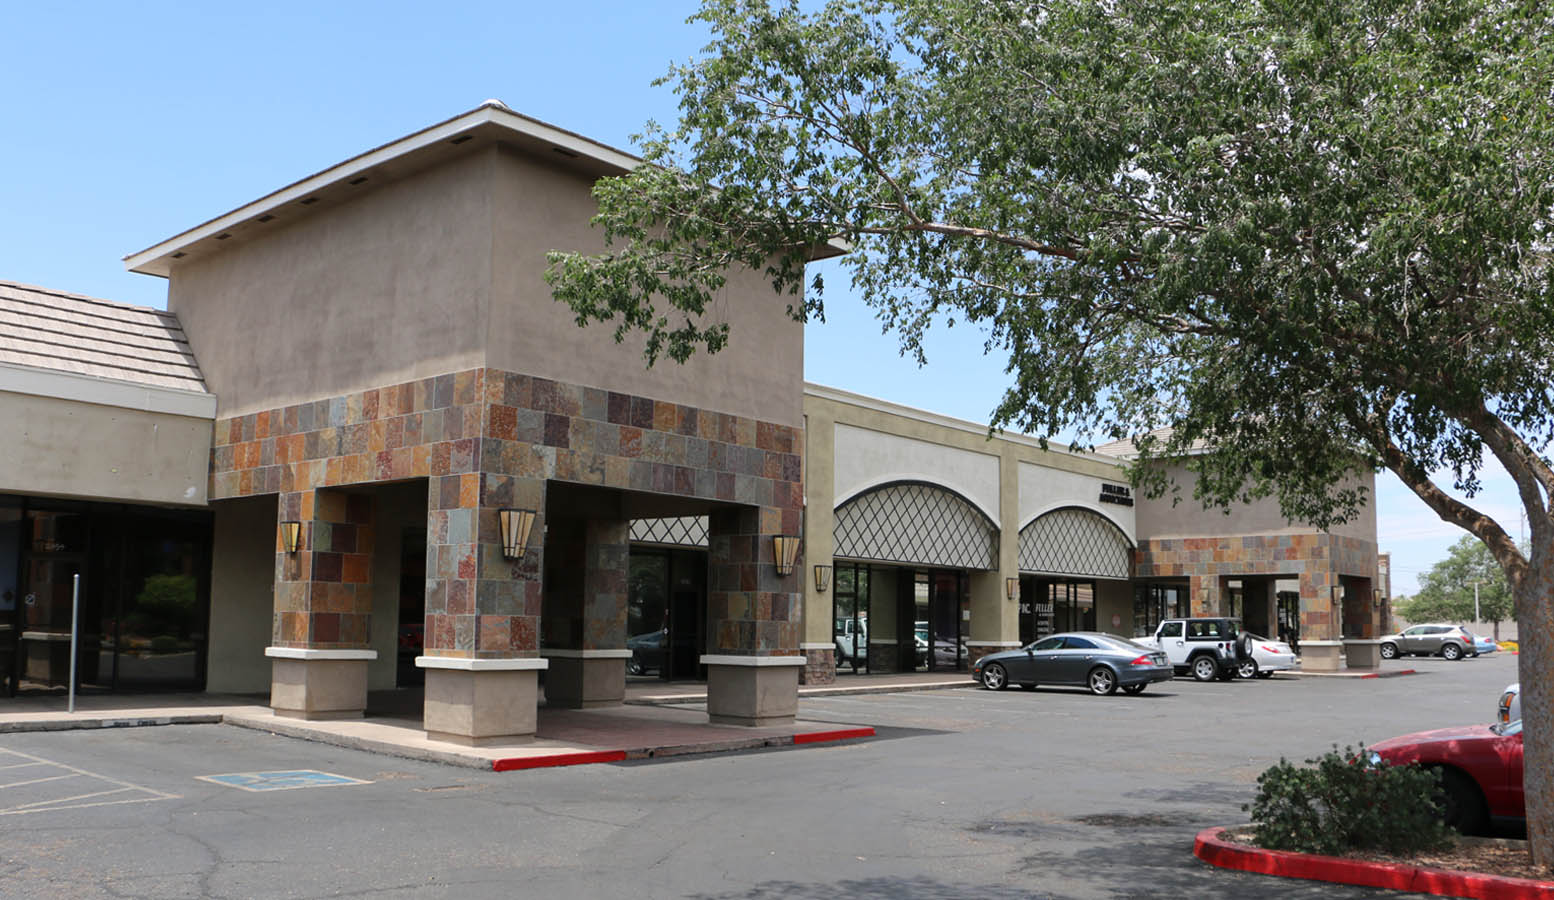 REIN & GROSSOEHME Commercial Real Estate - Phoenix and Tucson, Arizona ...